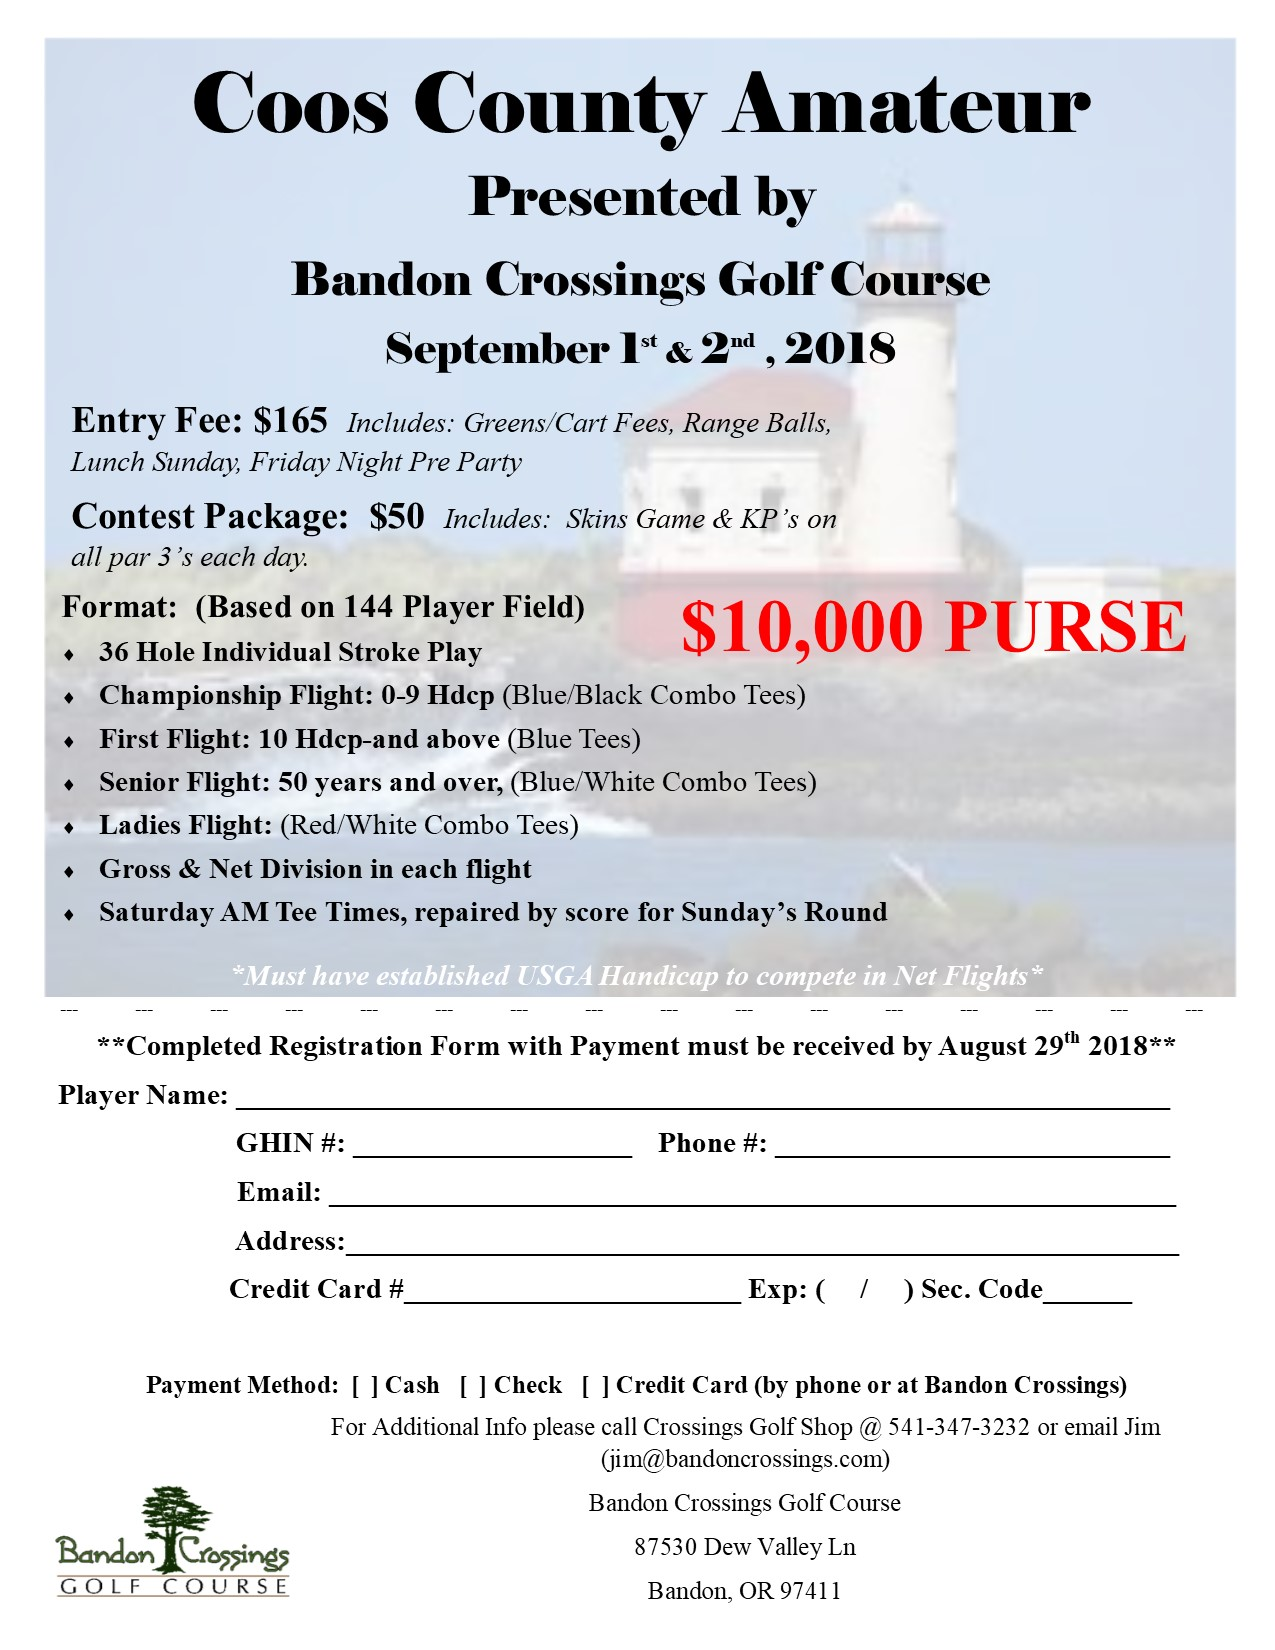 Coos County Amateur Flyer 1